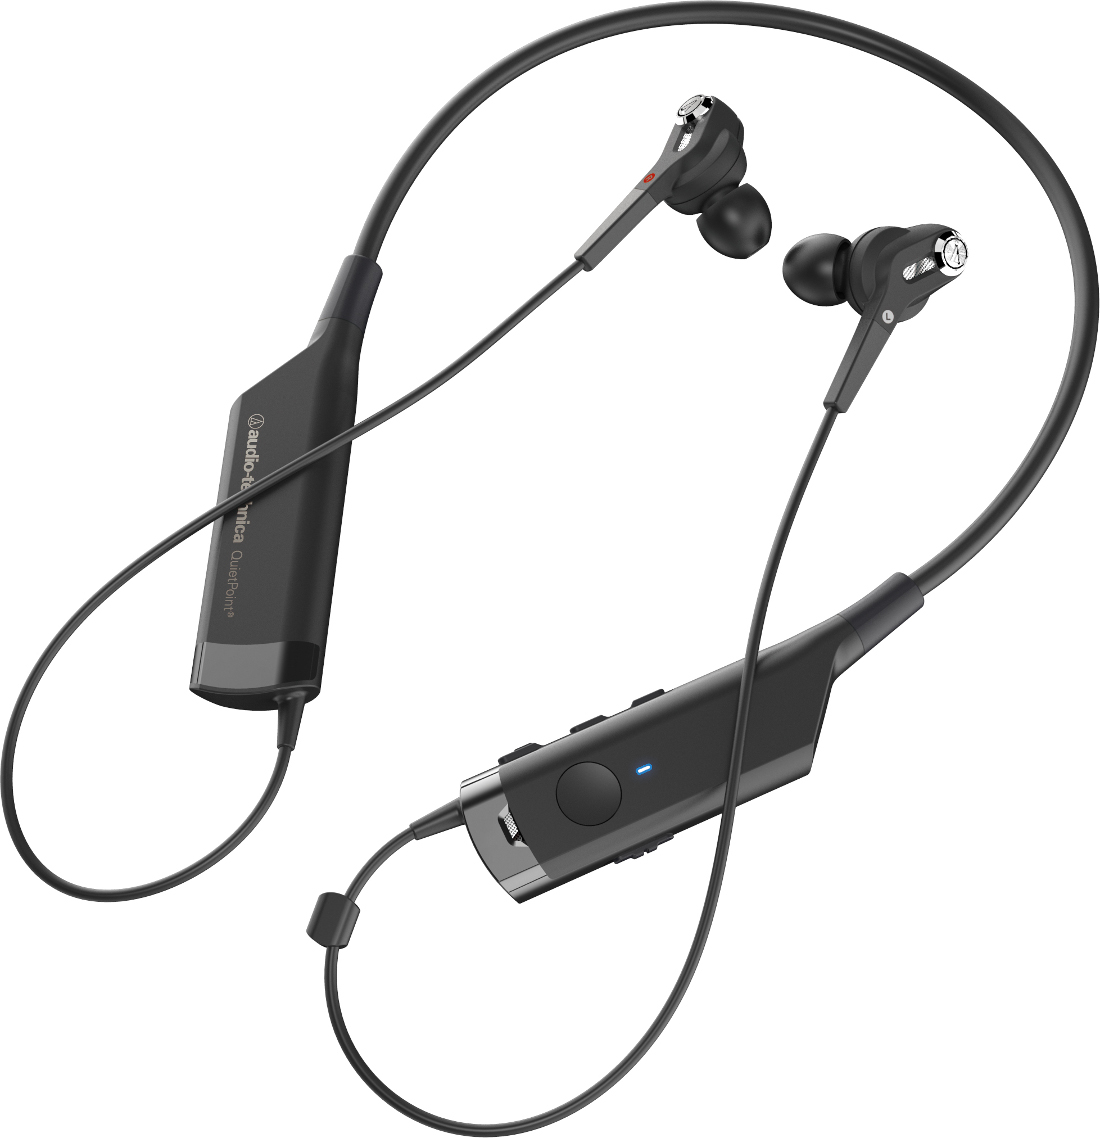 ATH-ANC40BT In-Ear Bluetooth Kopförer mit aktivem Noise-Cancelling